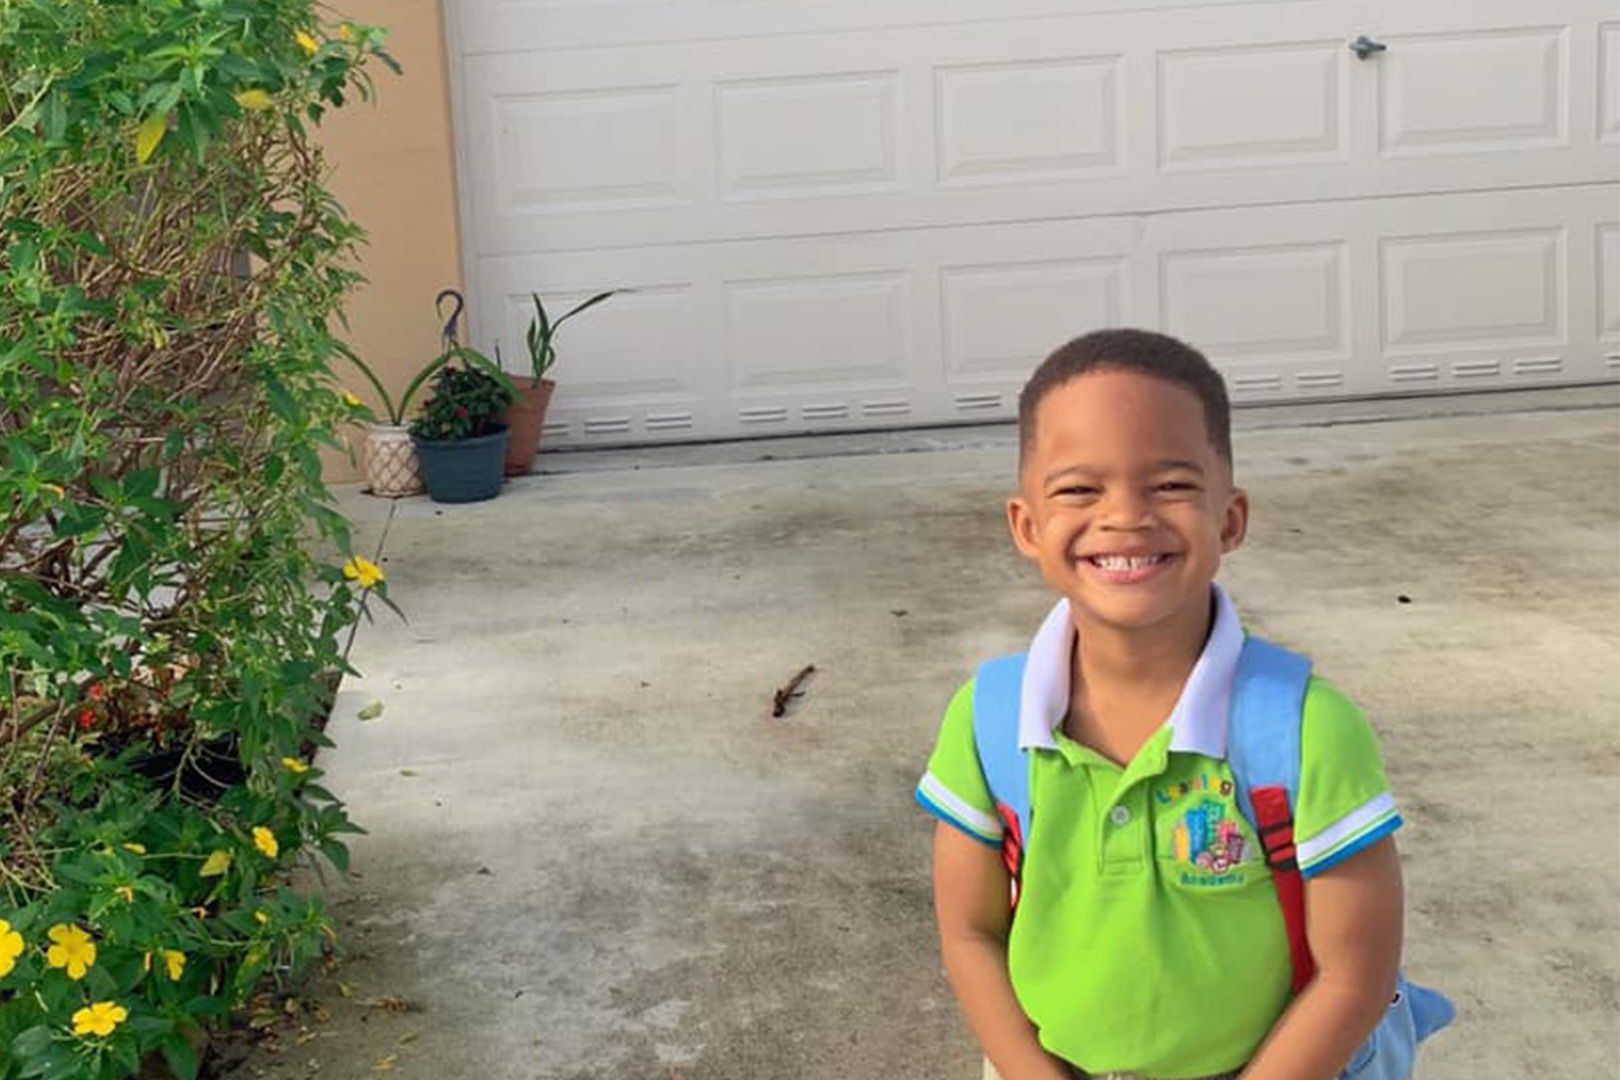 Three-Year-Old Florida Boy Embraced by Classmates After Surviving Dorian in the Bahamas